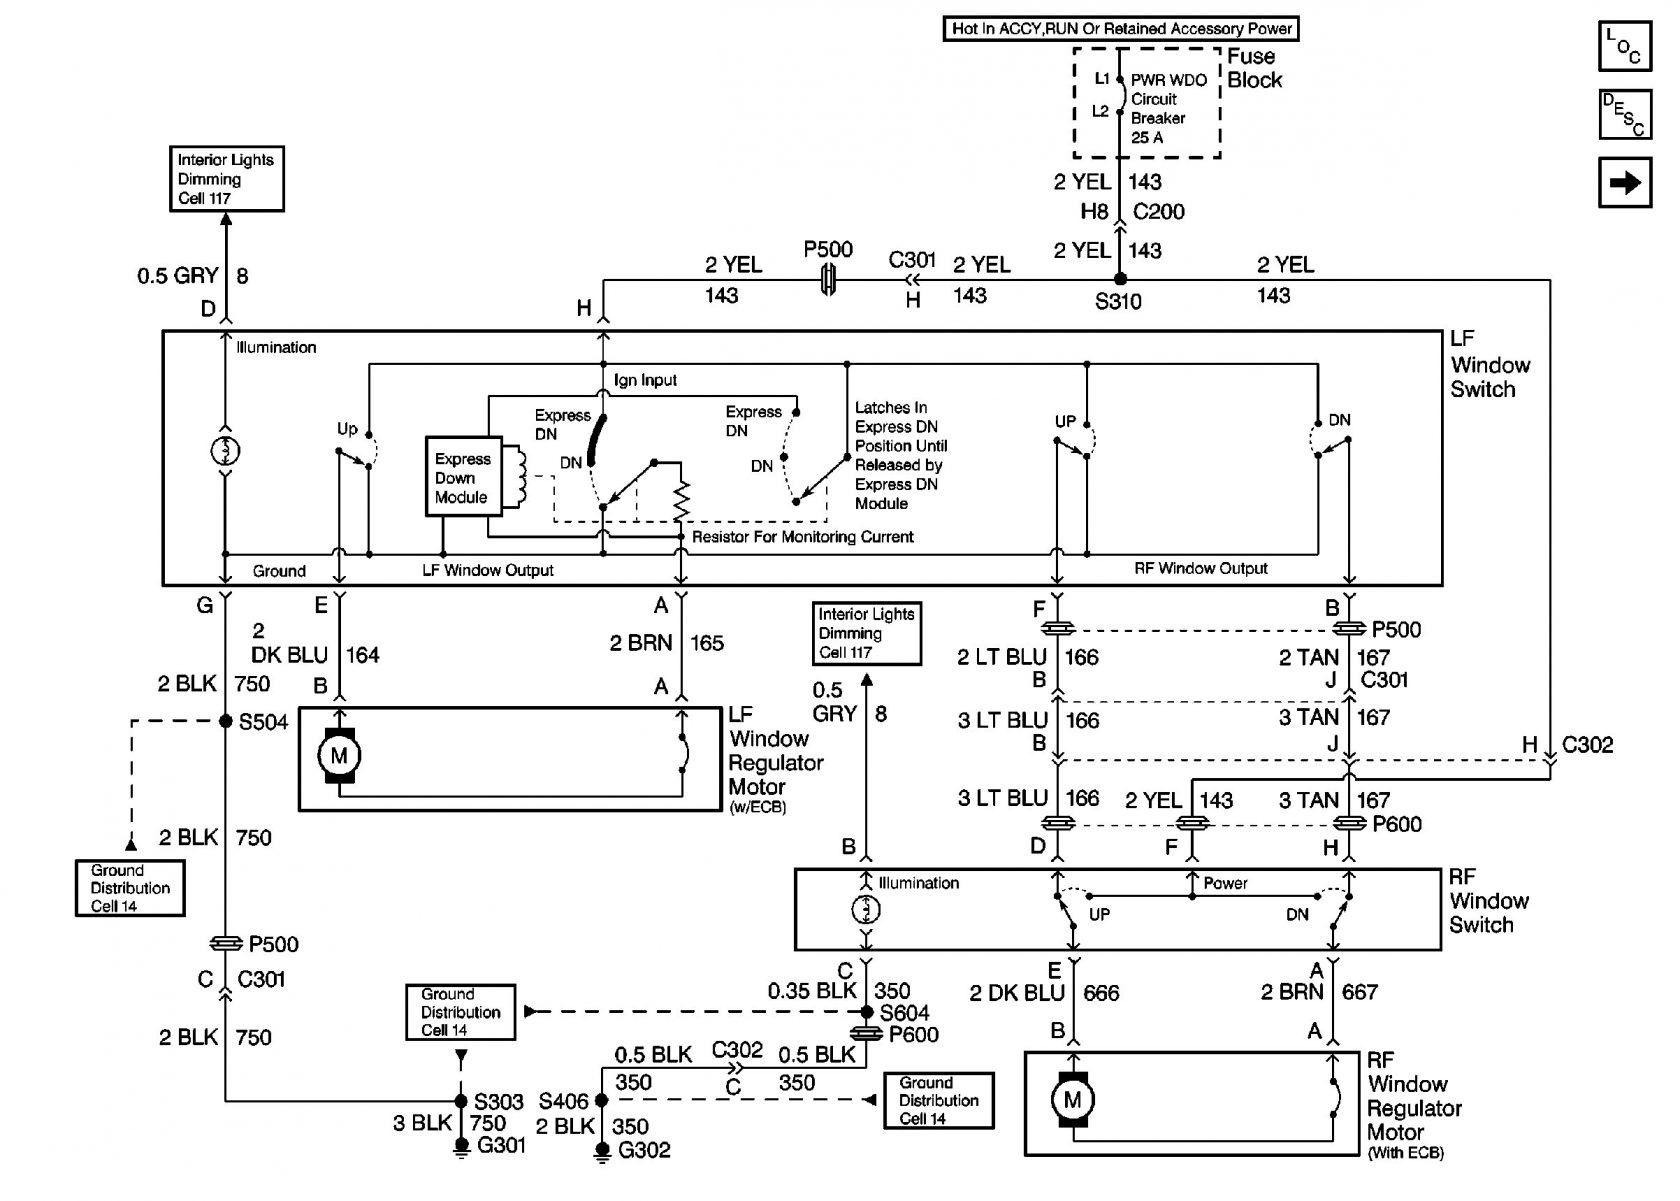 2005 subaru forester radio wiring diagram chrysler 300 diagrams 2 5i engine library